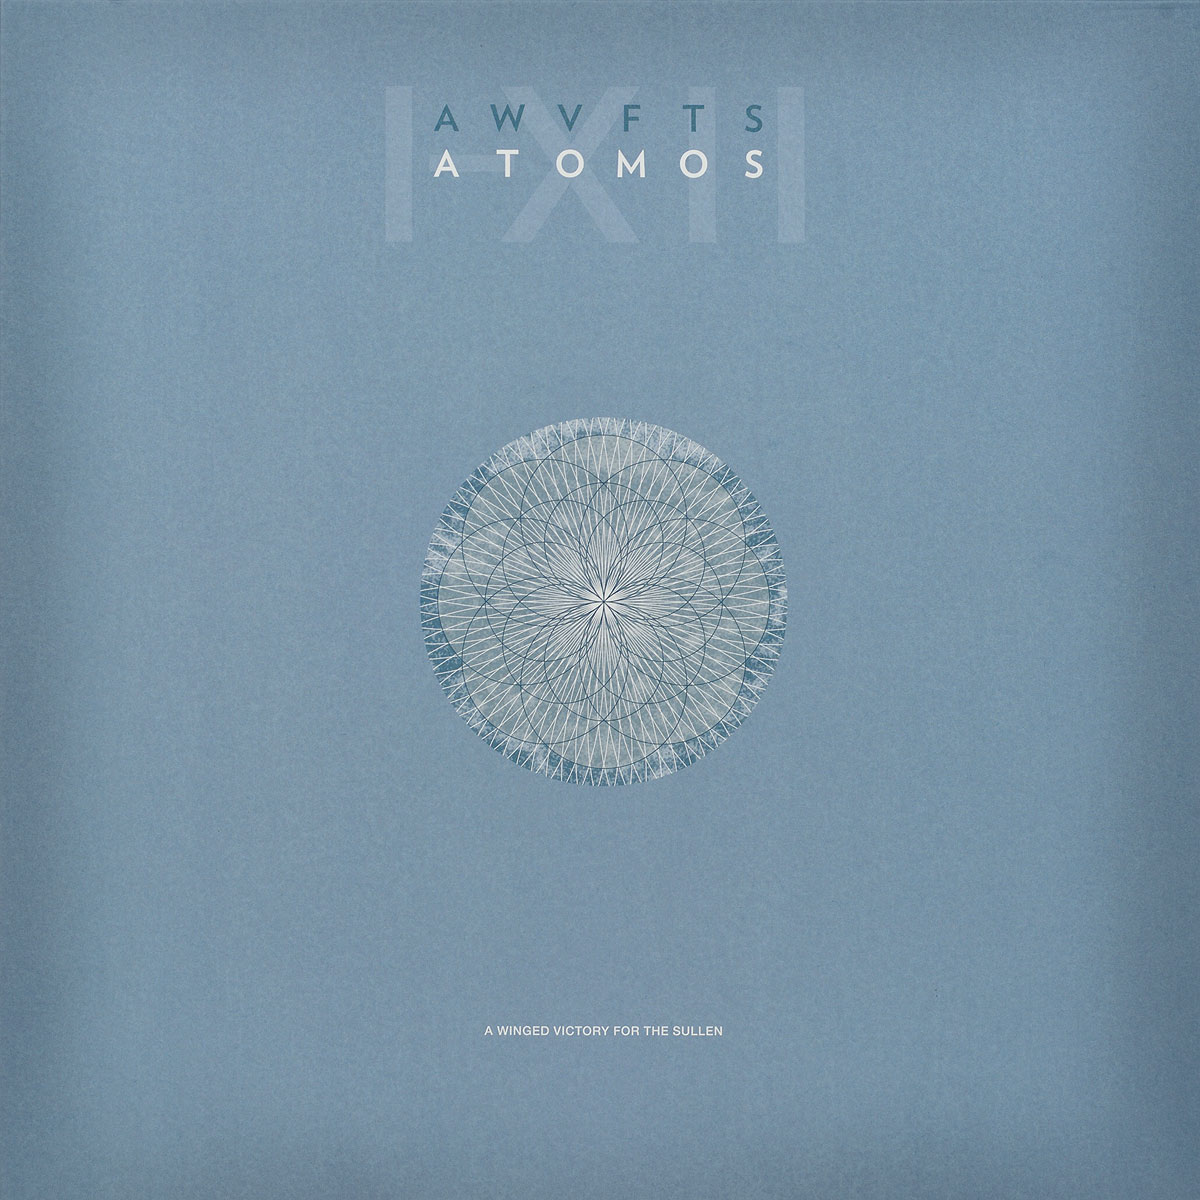 A Winged Victory For The Sullen. Atomos (2 LP)